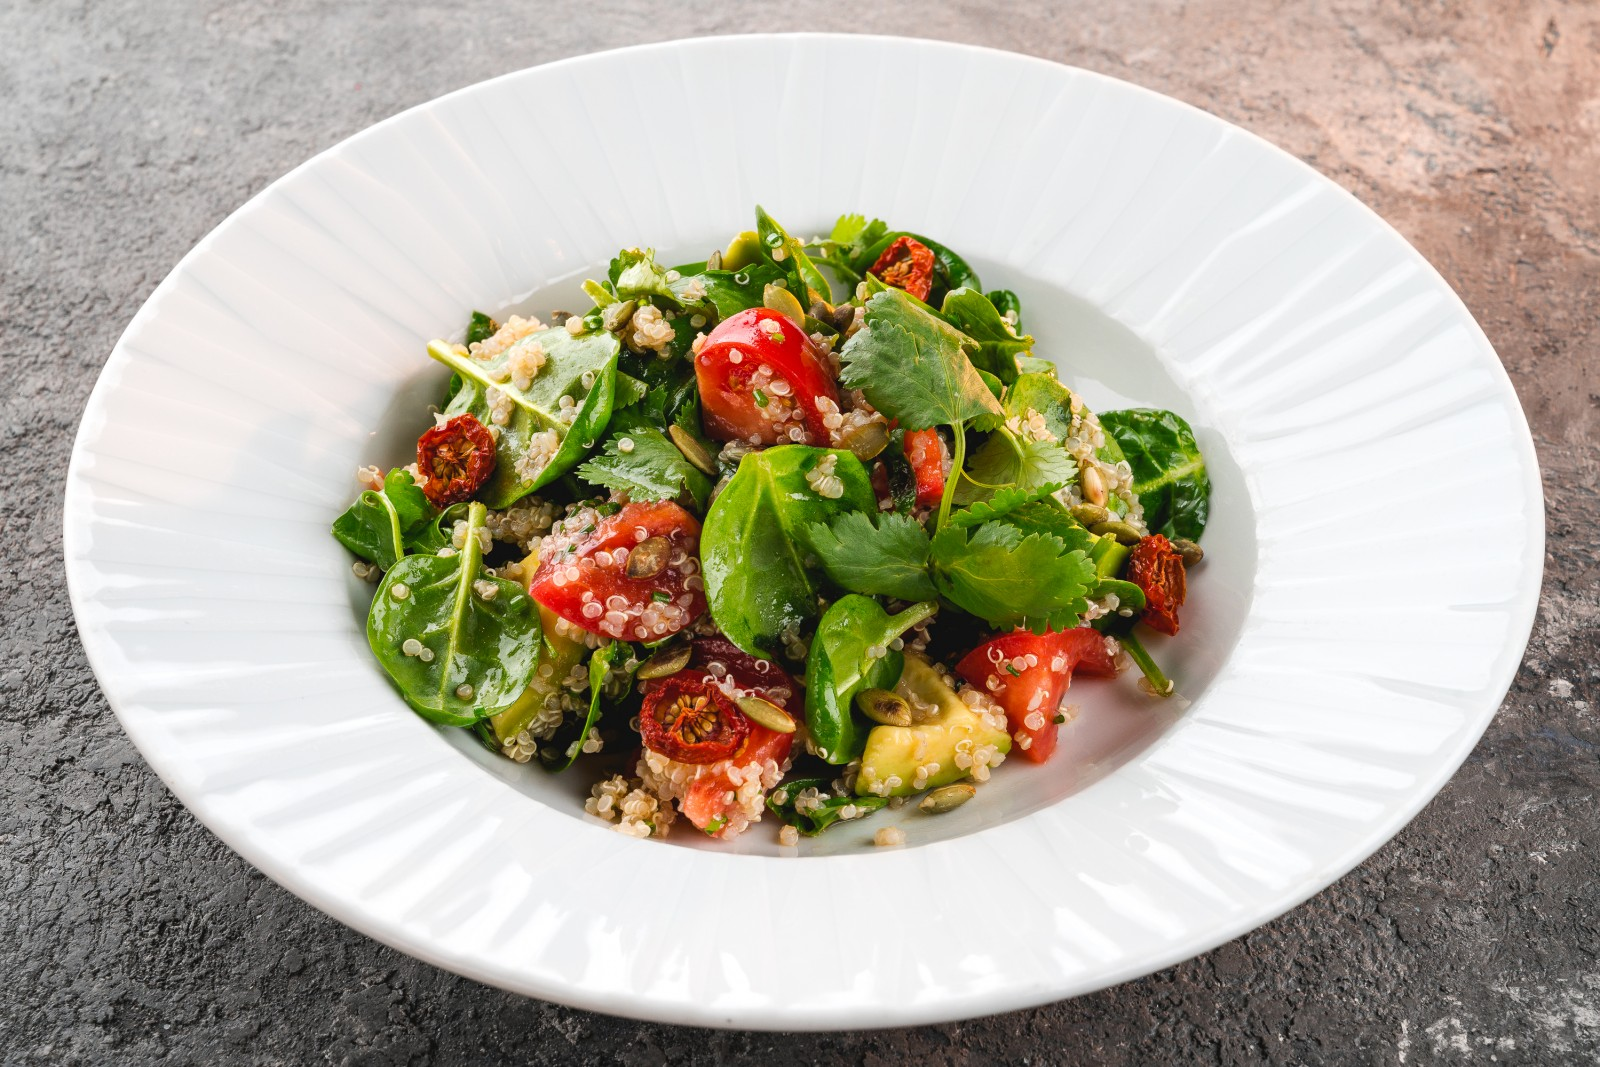 Salad with quinoa & tomatoes